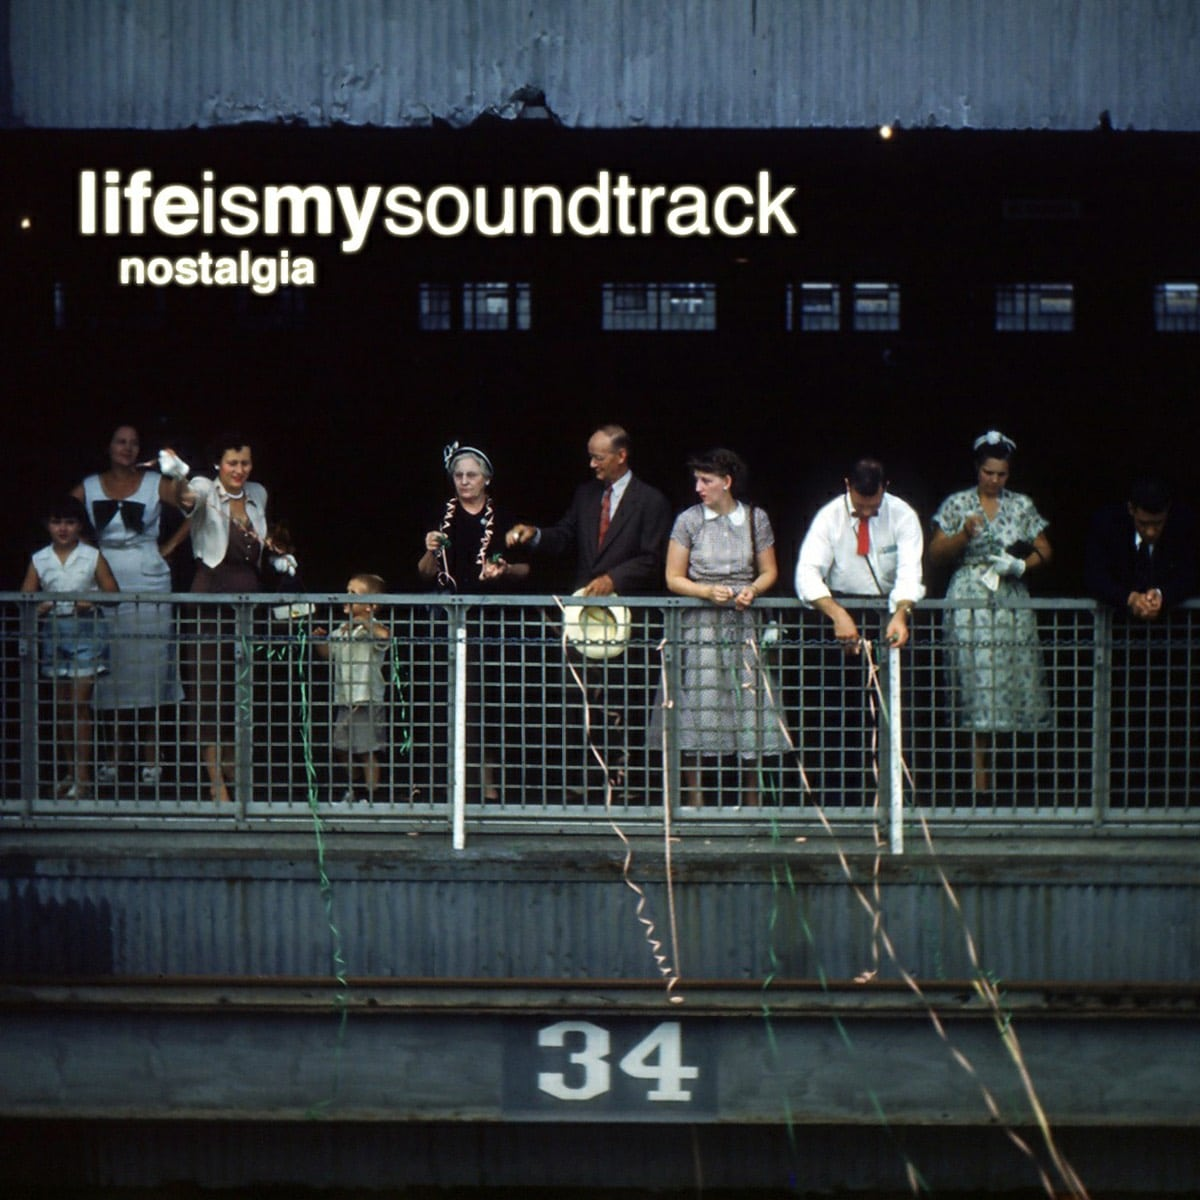 The album Nostalgia by Life Is My Soundtrack - Journey back to a distant time where long forgotten memories come back to life